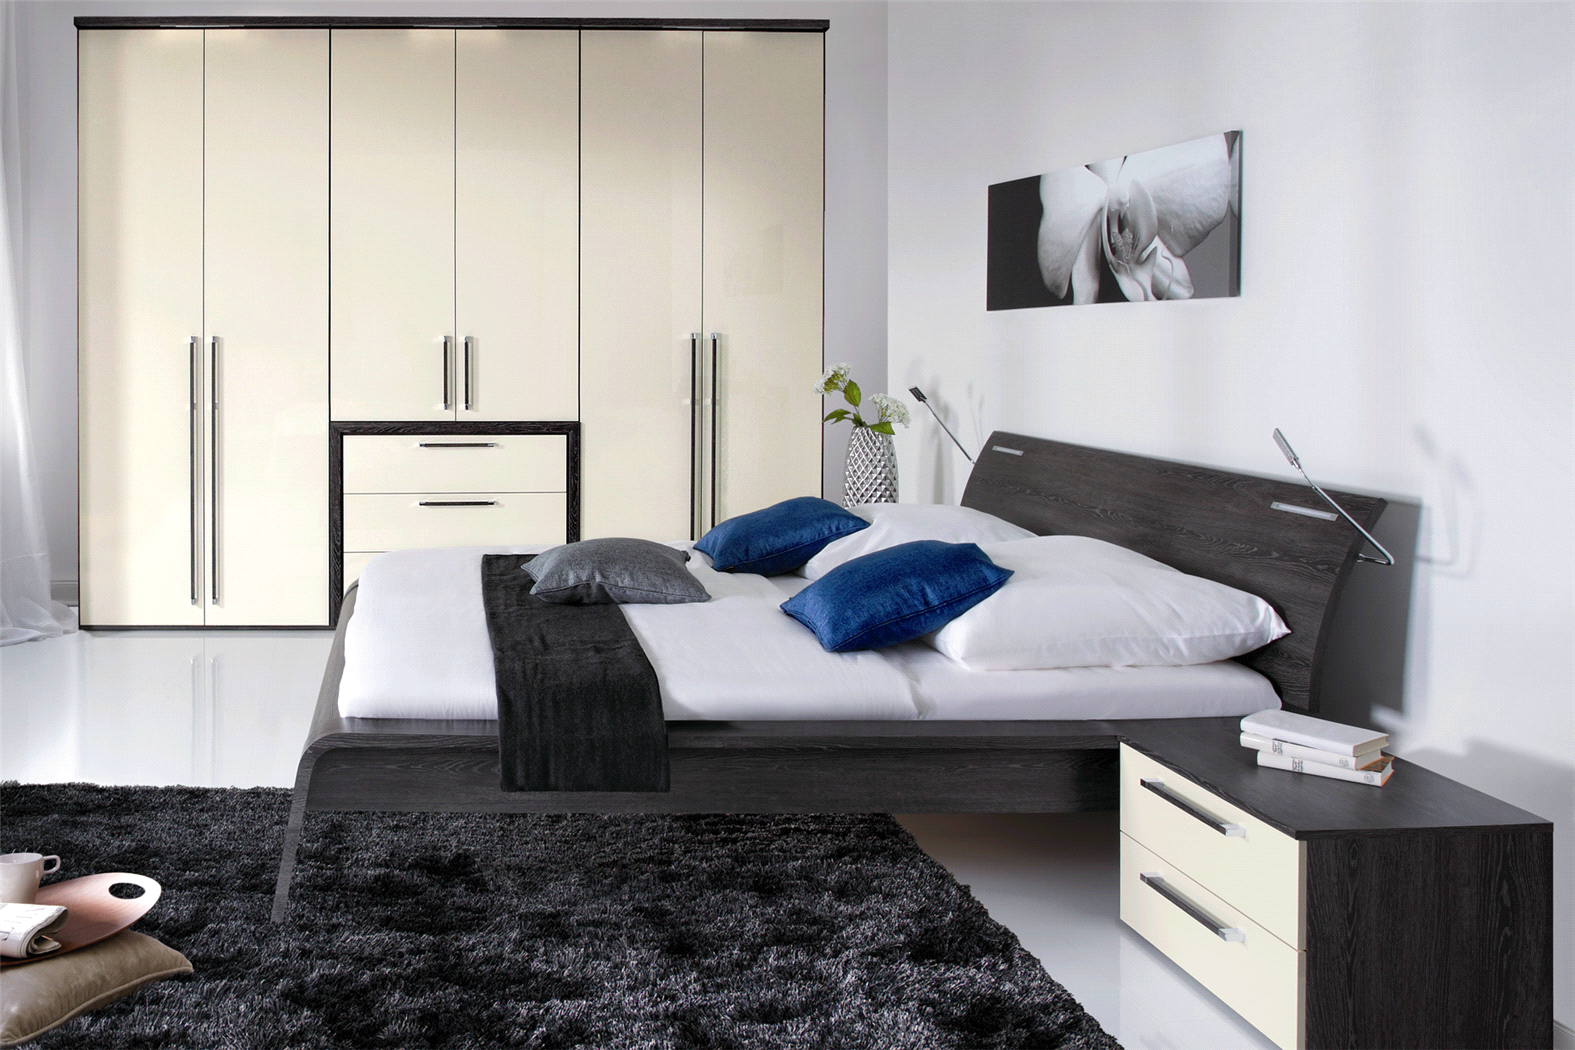 kastenprogramma columbus nolte meubelen tilt de keizer. Black Bedroom Furniture Sets. Home Design Ideas